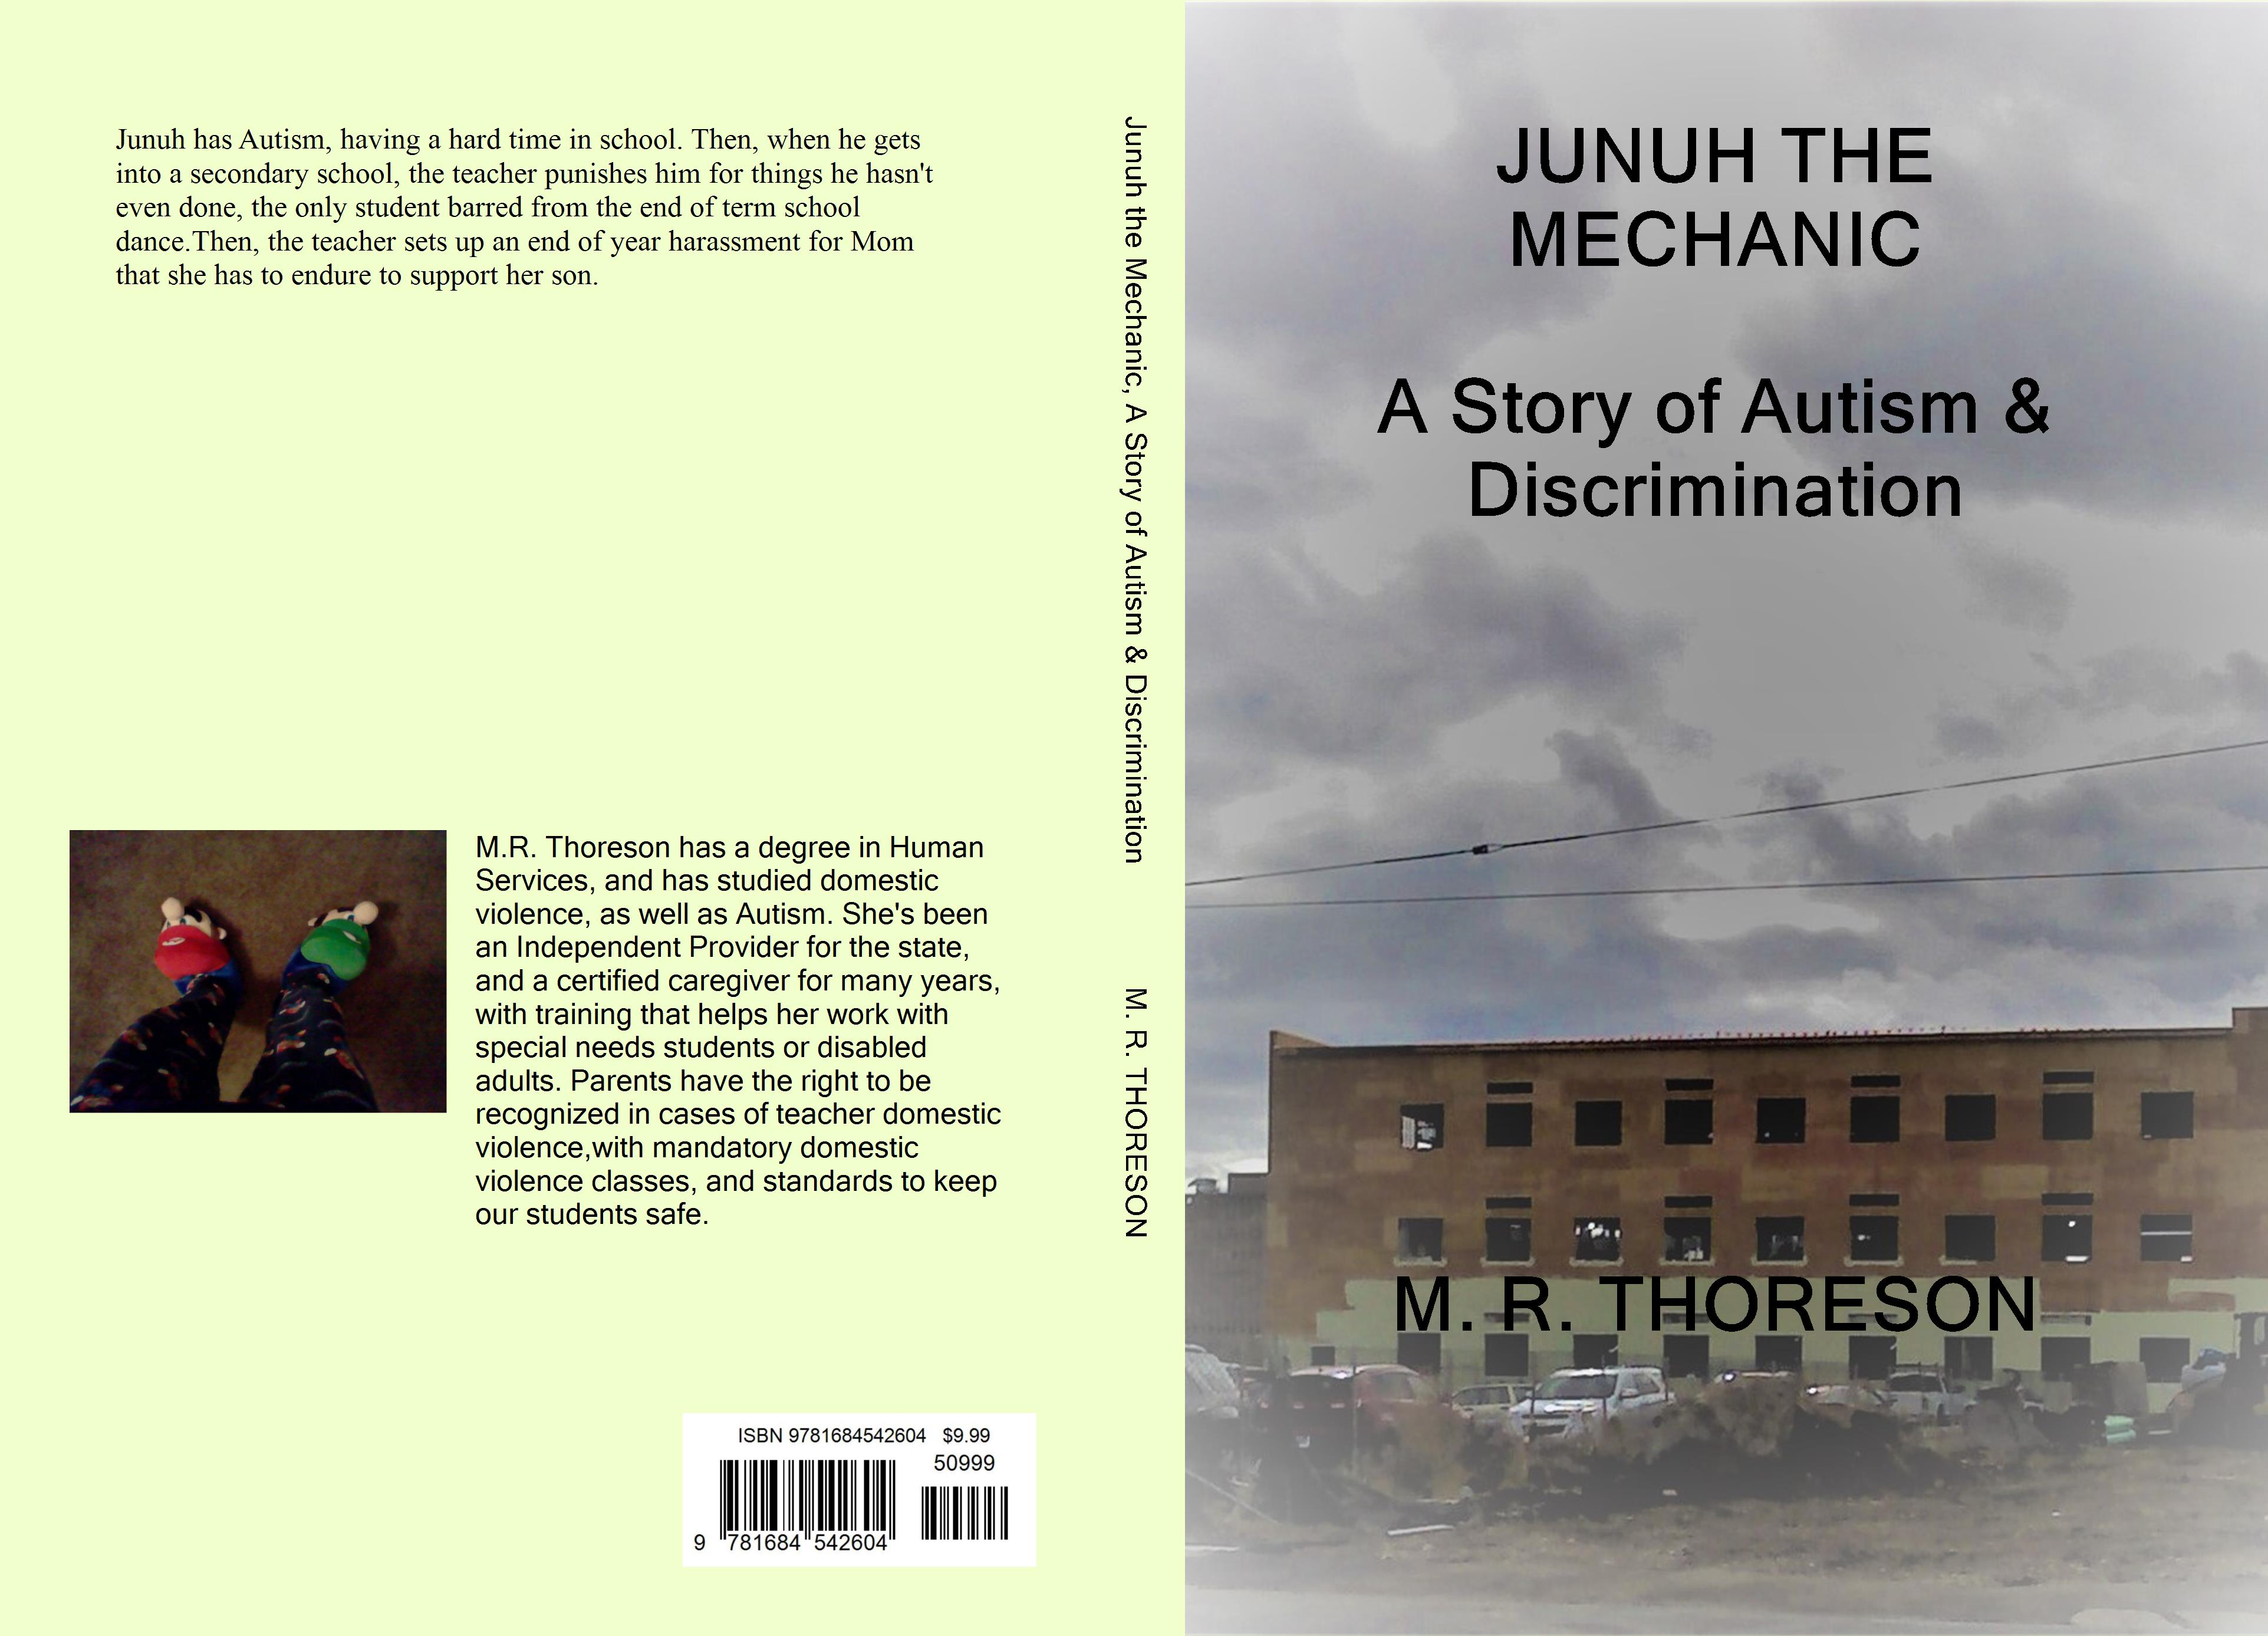 JUNUH THE MECHANIC A Story of Autism & Discrimination cover image